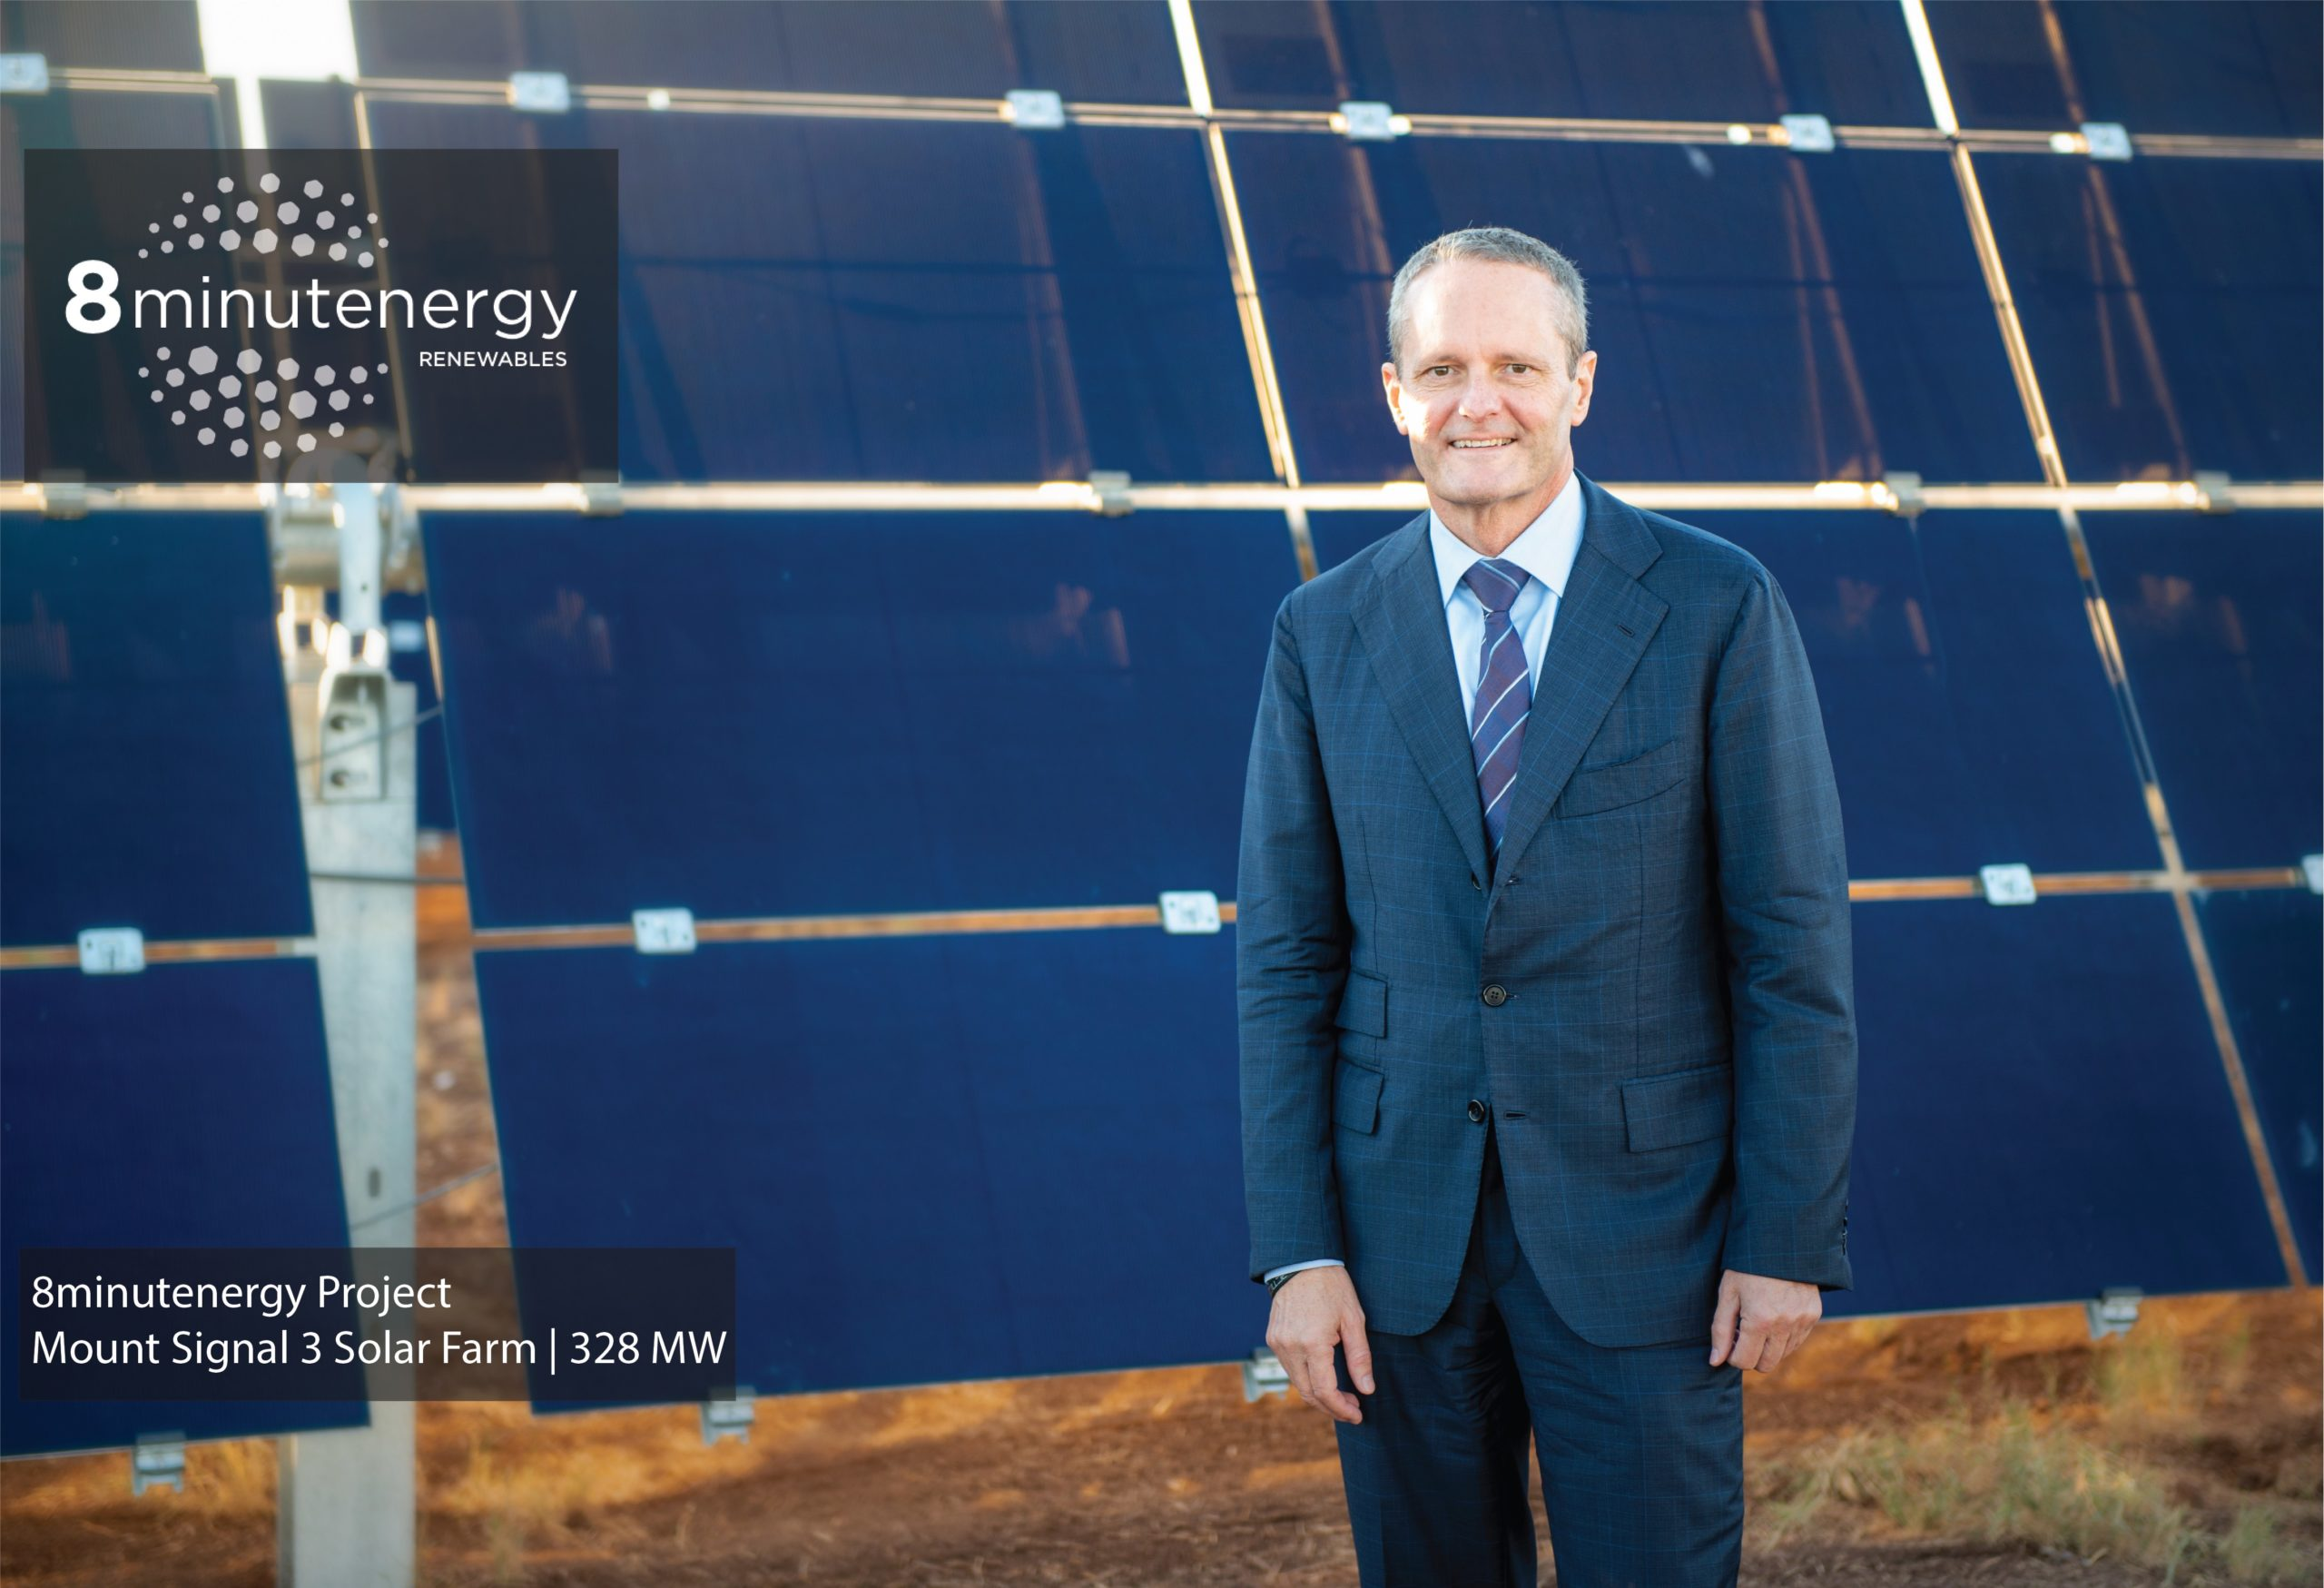 Tom Buttgenbach, who co-founded 8minutenergy in 2009, led a management buyout of the shares of fellow co-founder Martin Hermann last week.